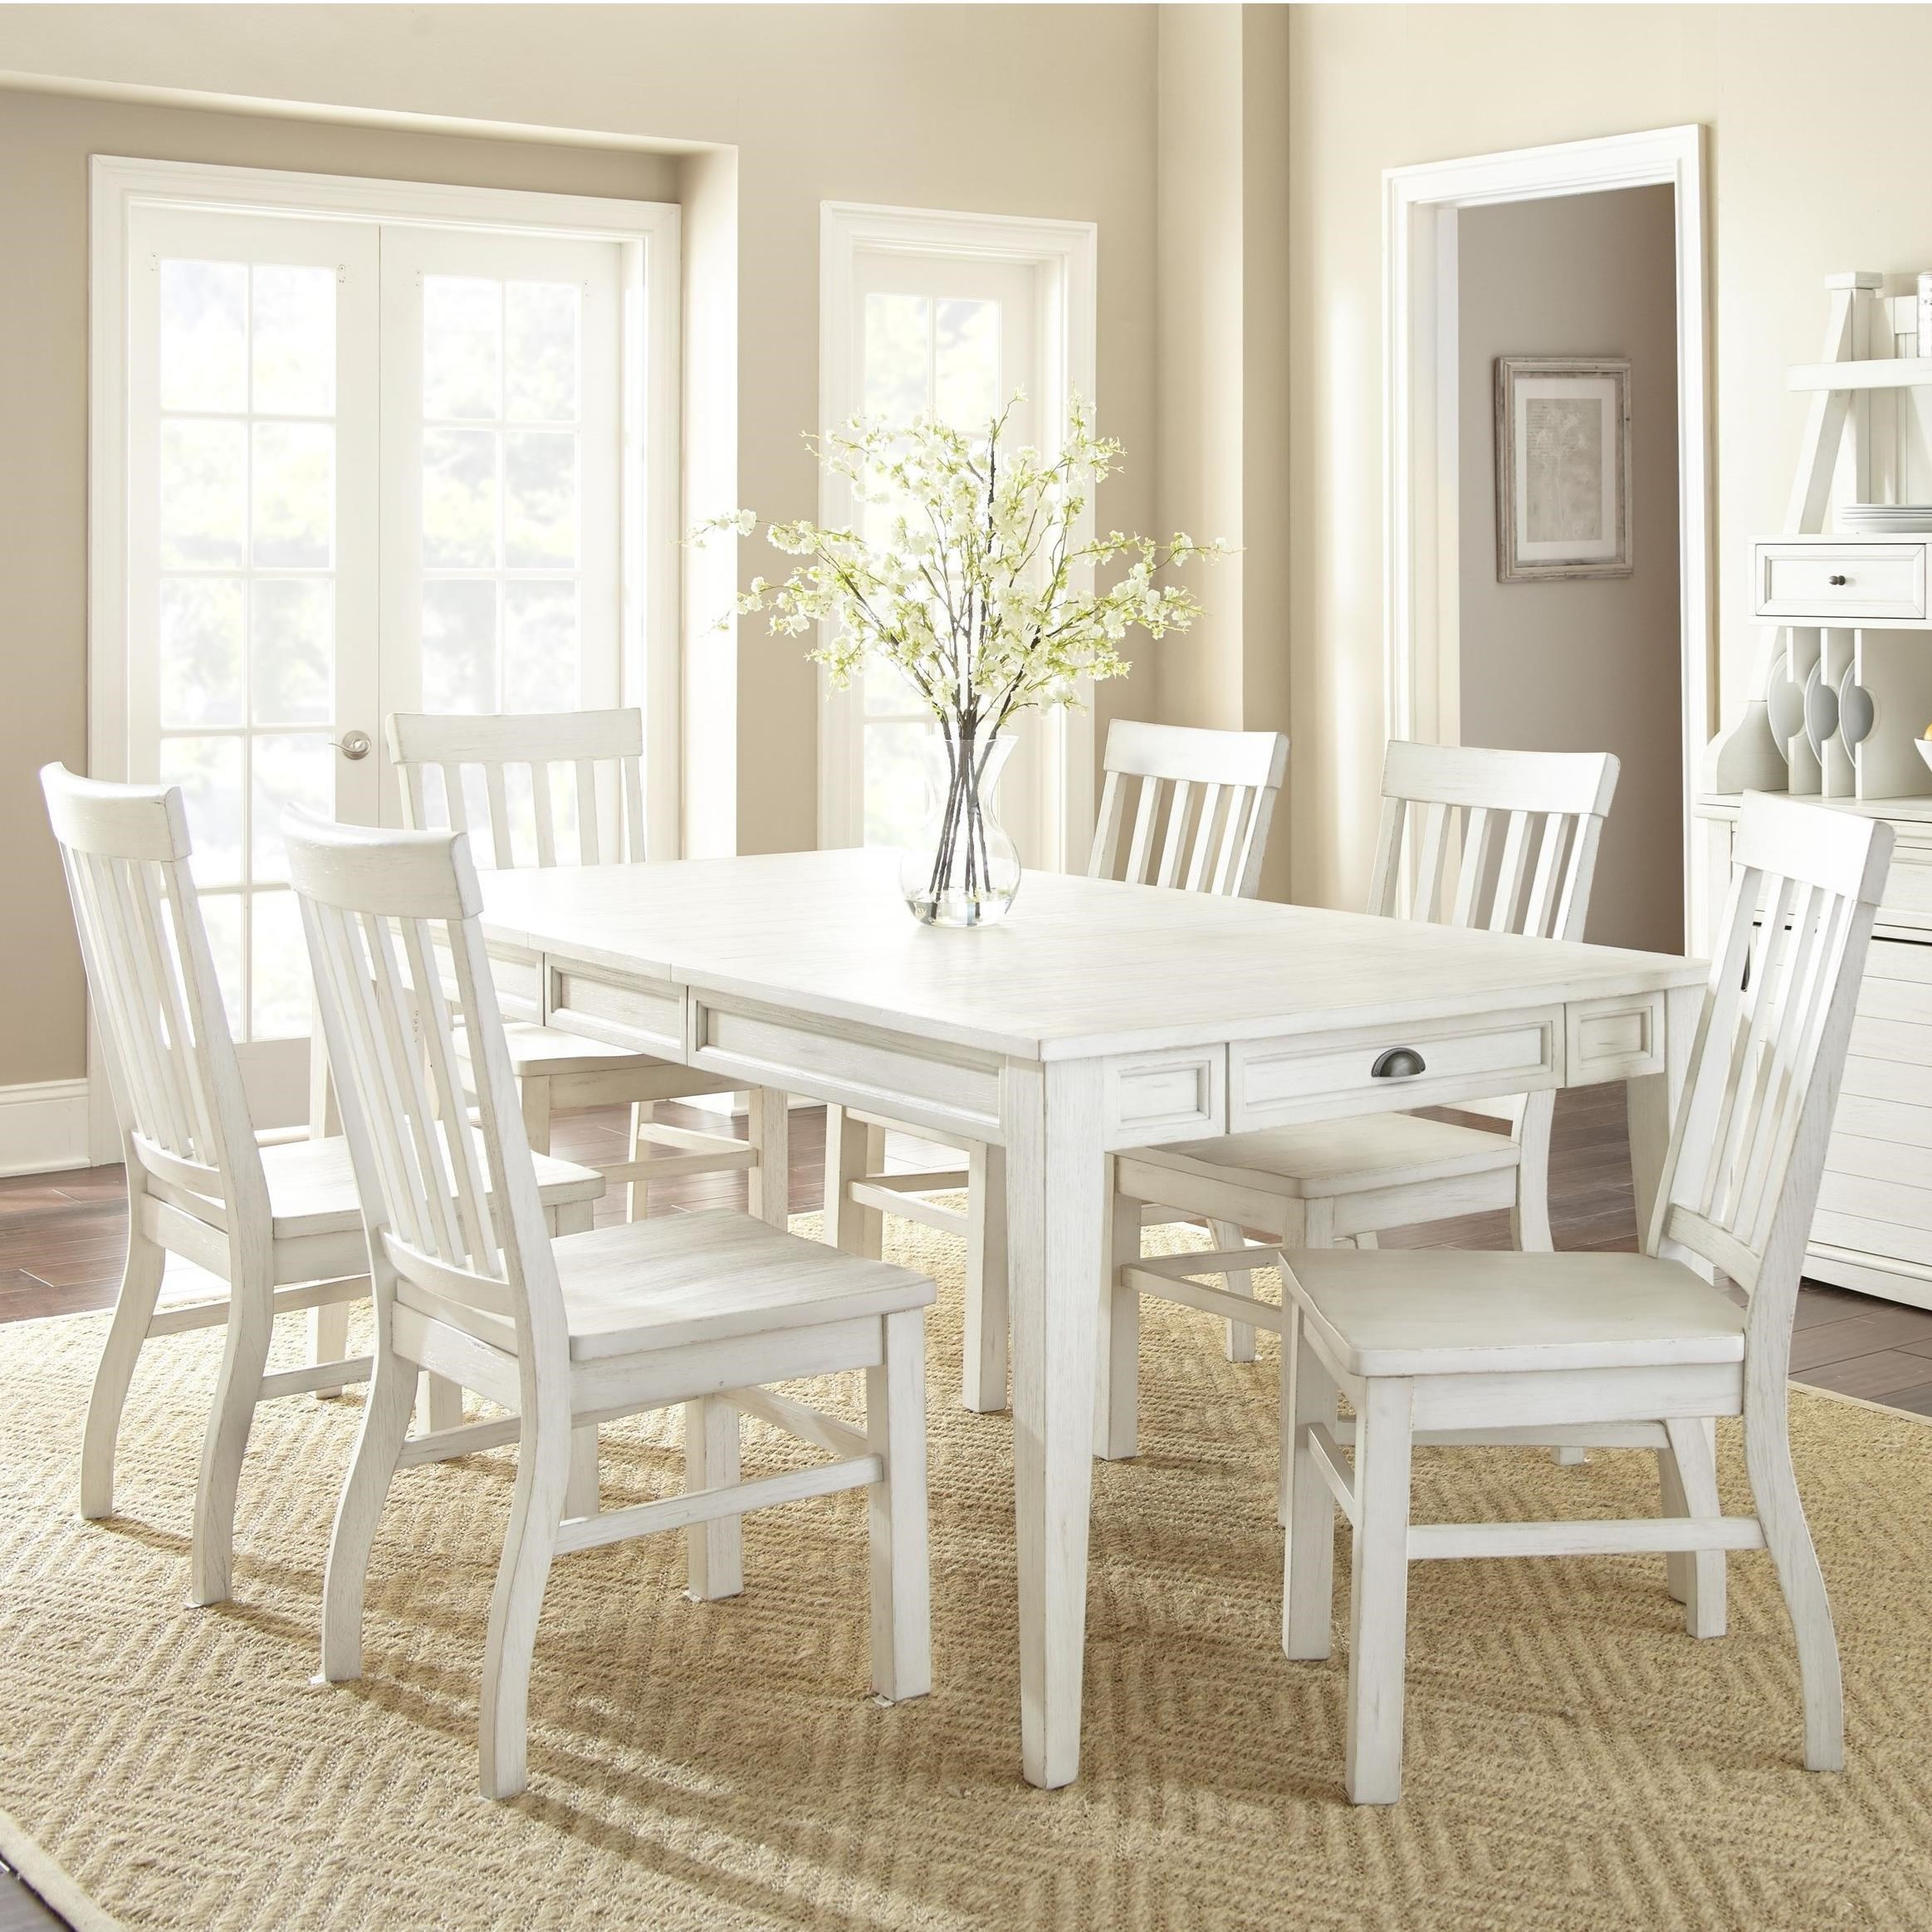 Good Steve Silver Cayla 7 Piece Farmhouse Dining Set With Table Storage